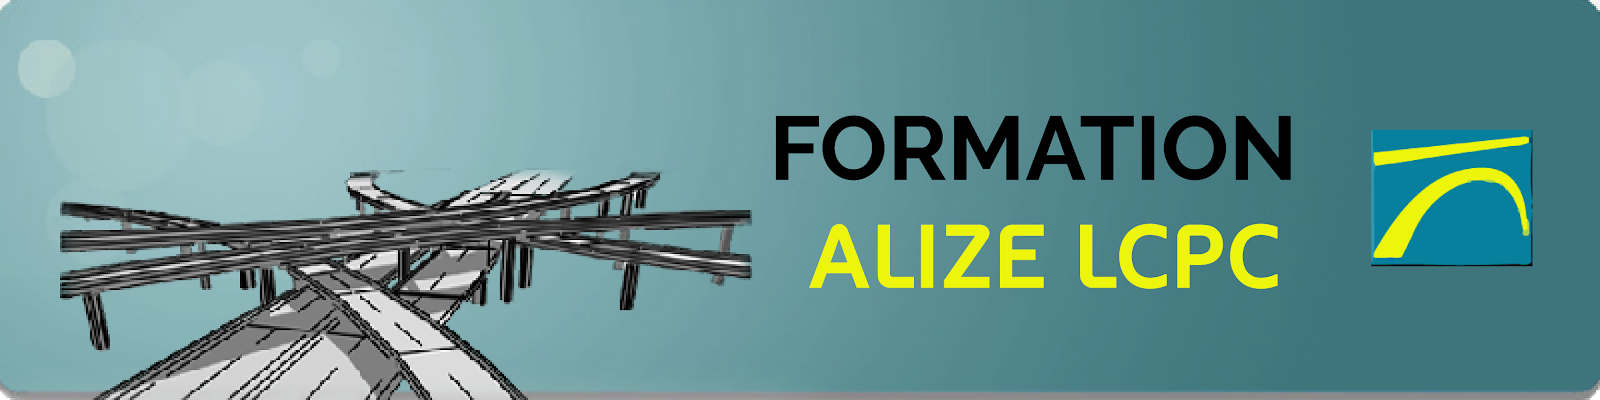 formation alize lcpc